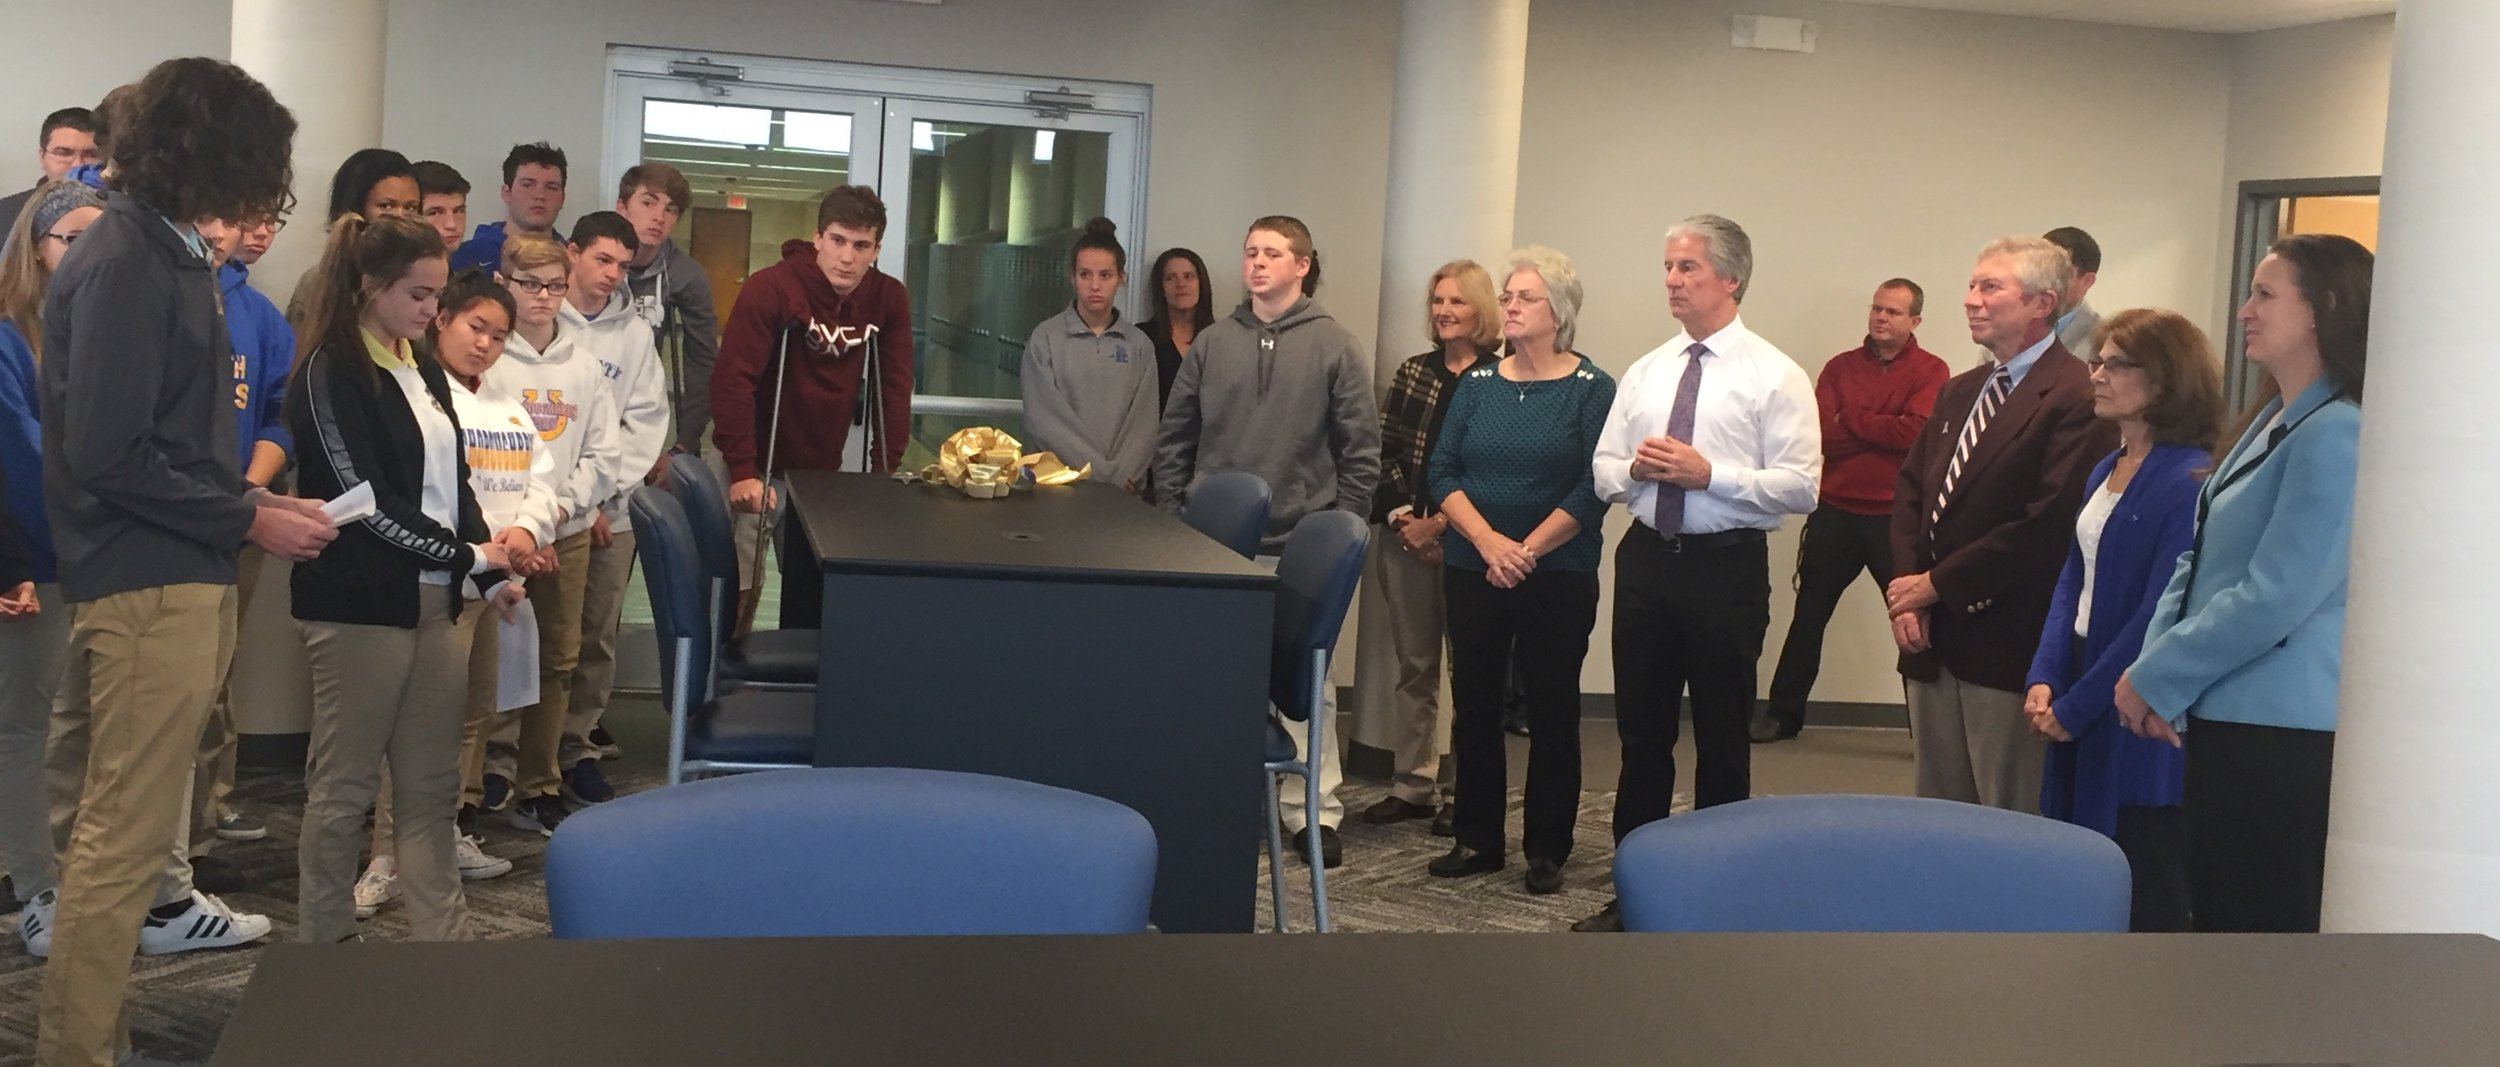 On behalf of the Student Body, members of Student Government thanked the Brennan/Enzweiler Family for their passion and continued support of NCC.